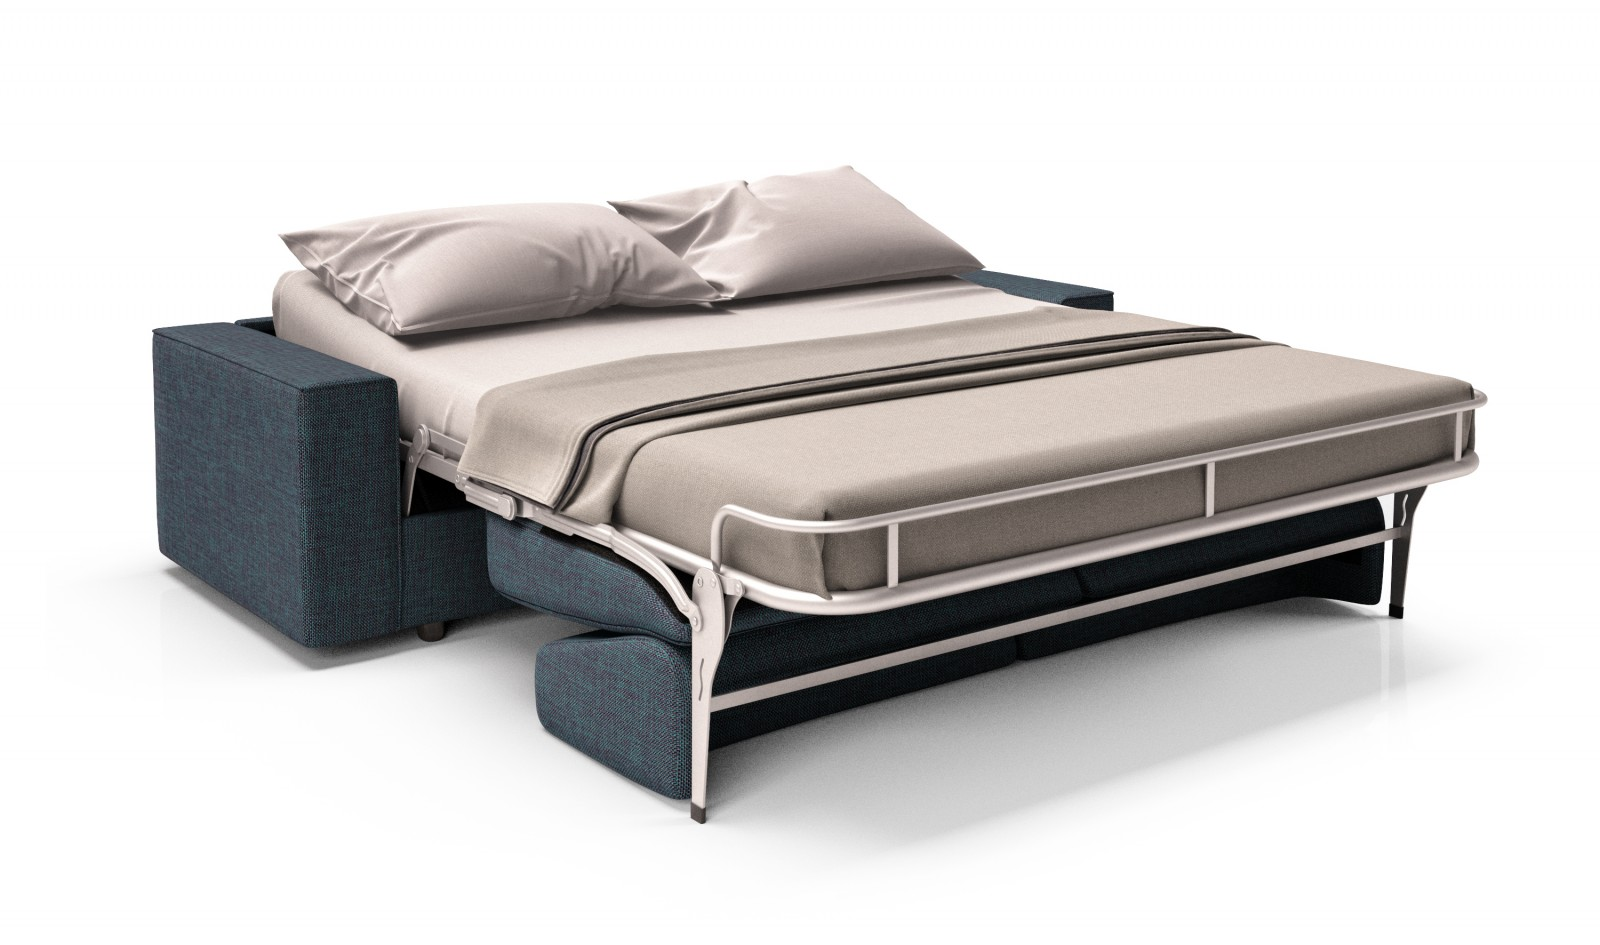 Sofa Bed Double Size Fold Collection Furniture Manufacturer